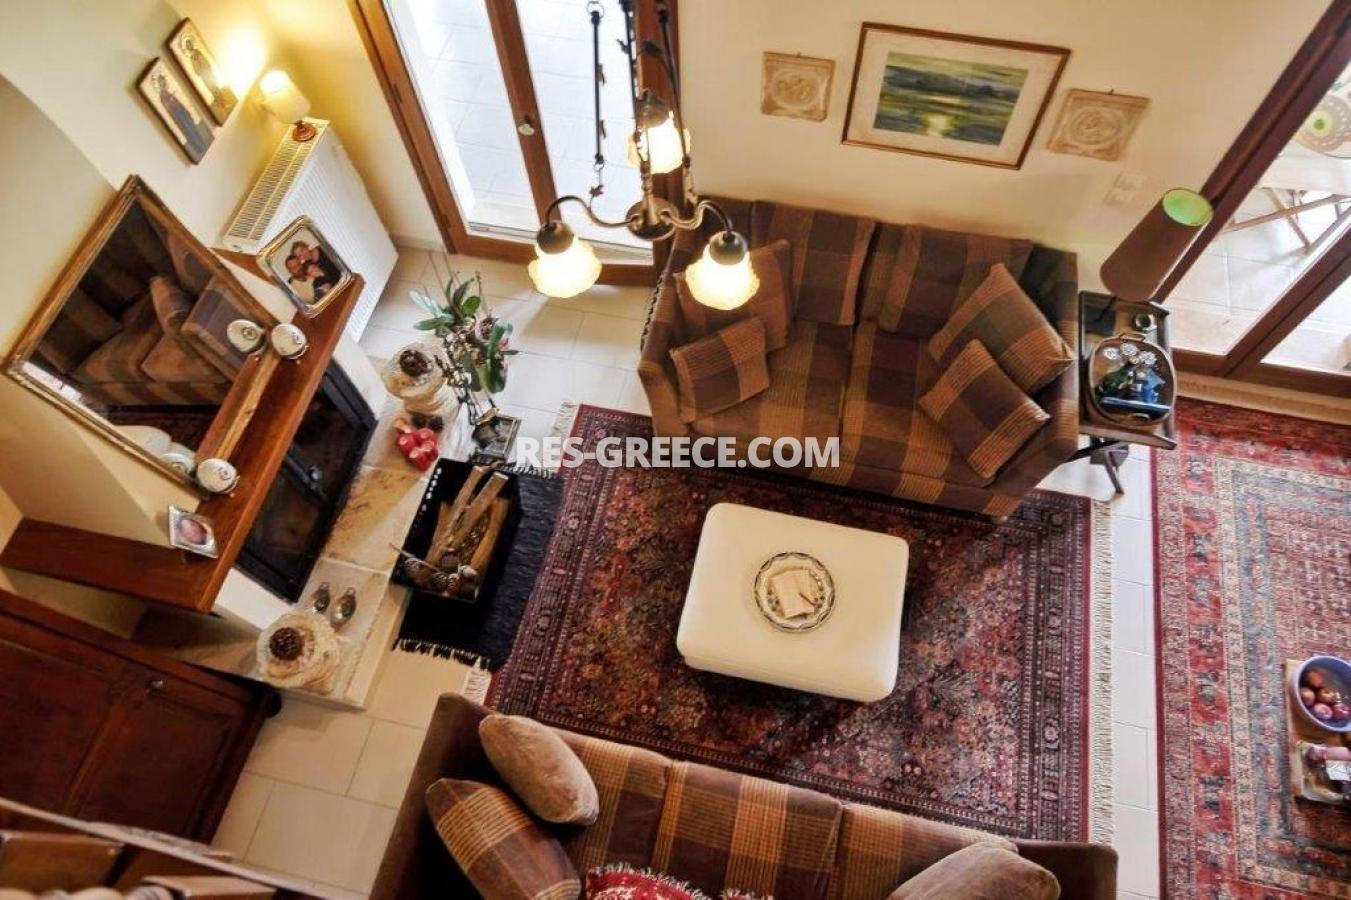 Poulades, Ionian Islands, Greece - Mediterranean bungalow for sale in Corfu - Photo 4